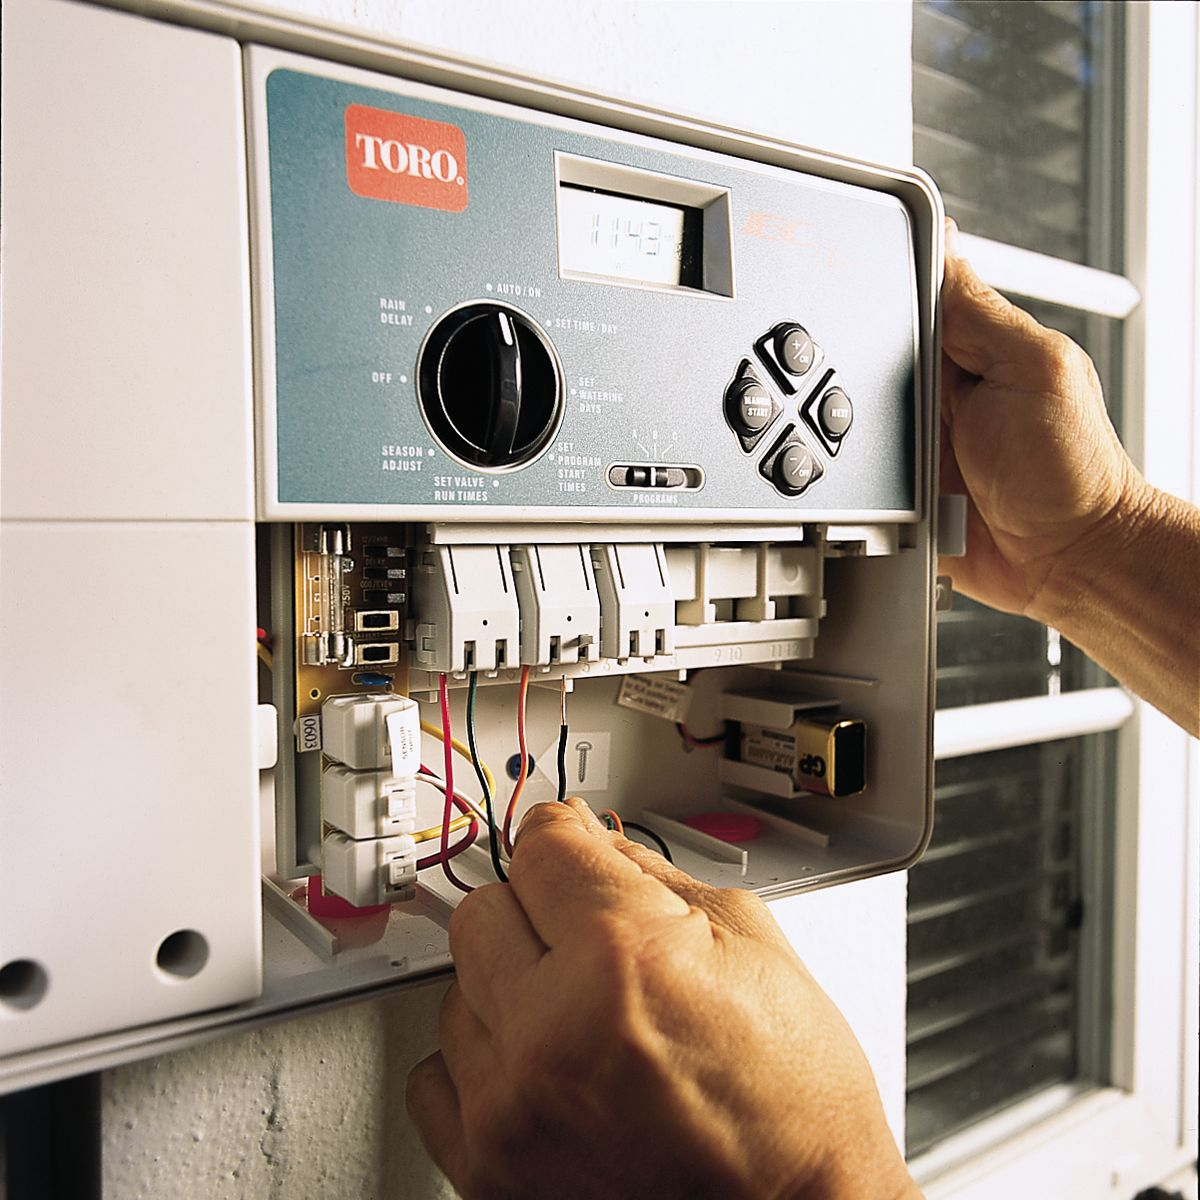 Man Attaching Wires to Timer Terminal For Sprinkler System